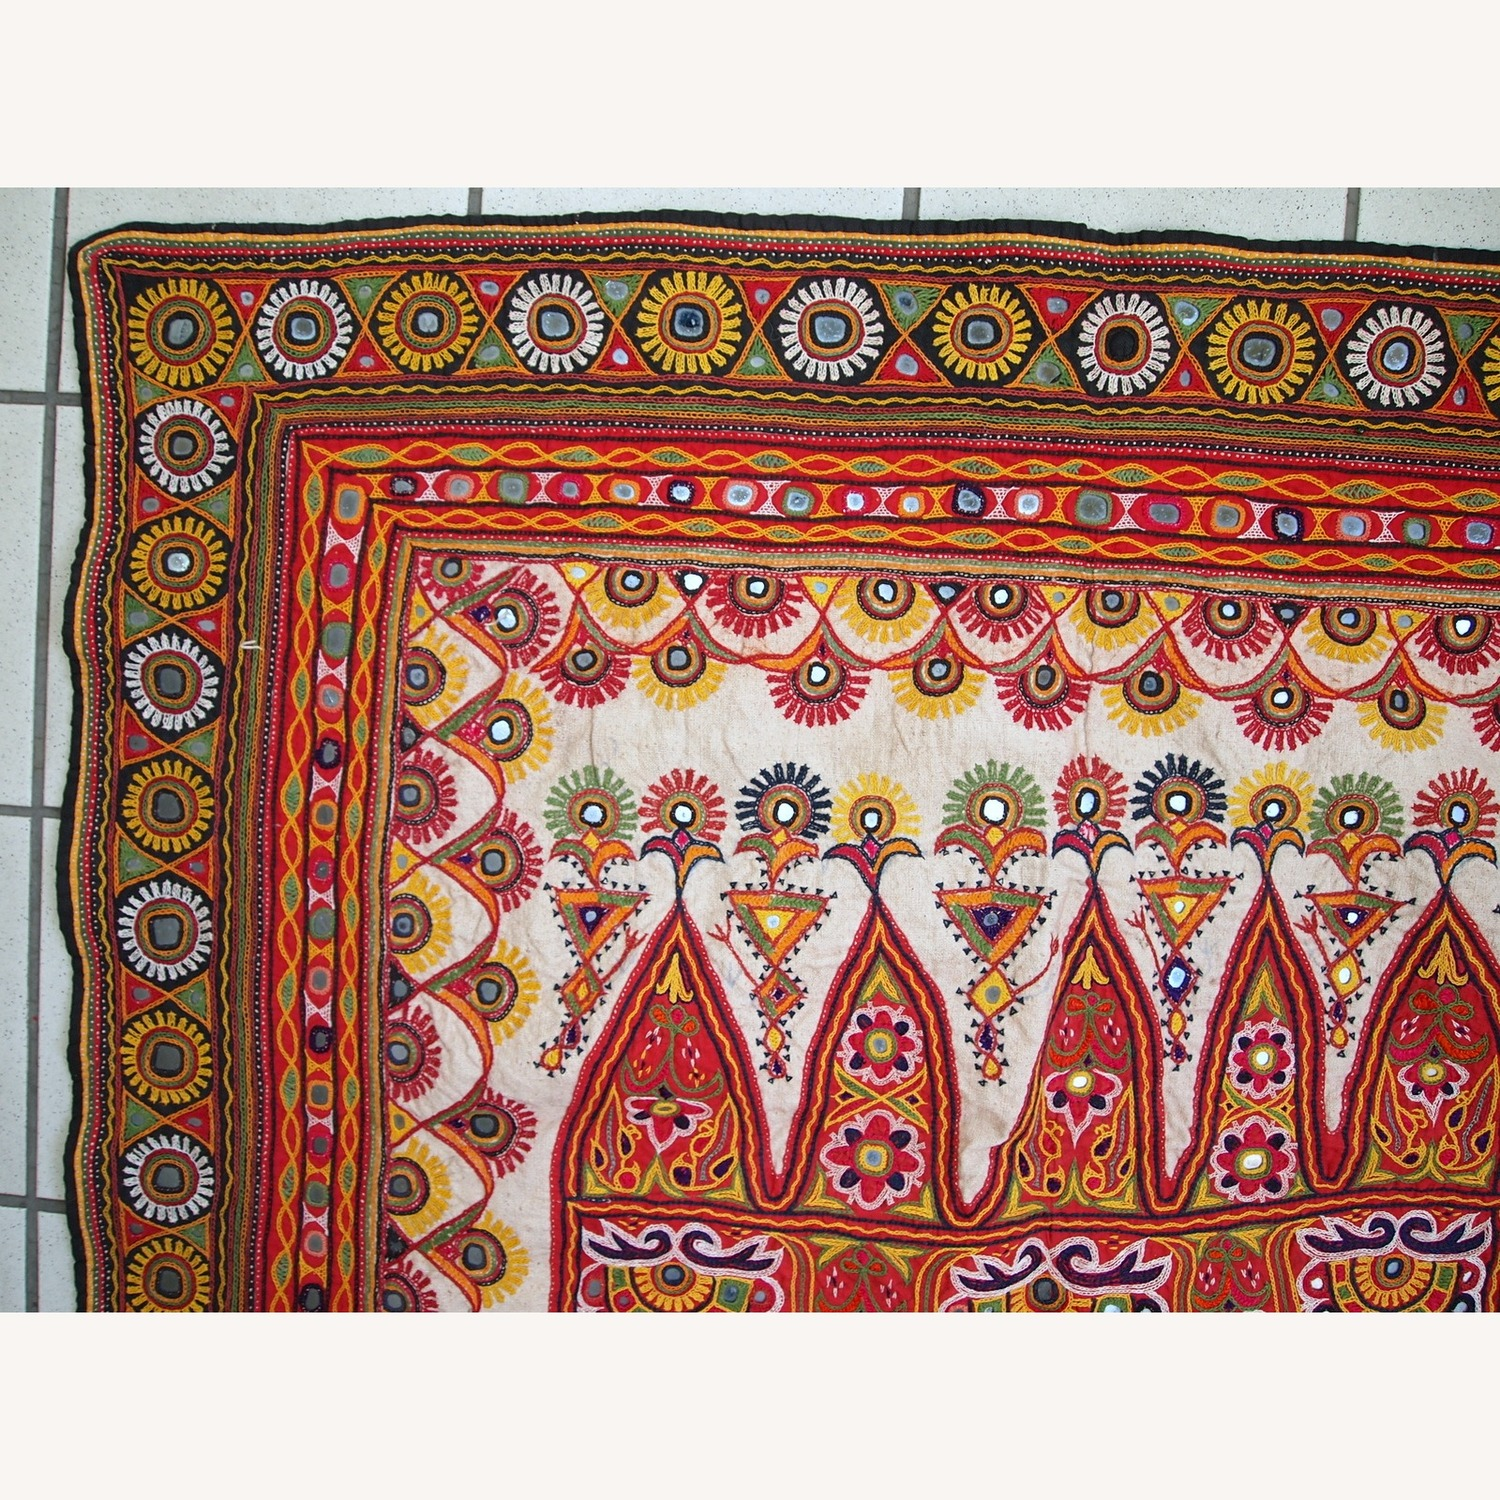 Handmade Indian Wall Hanging Embroidered Tapestry - image-9